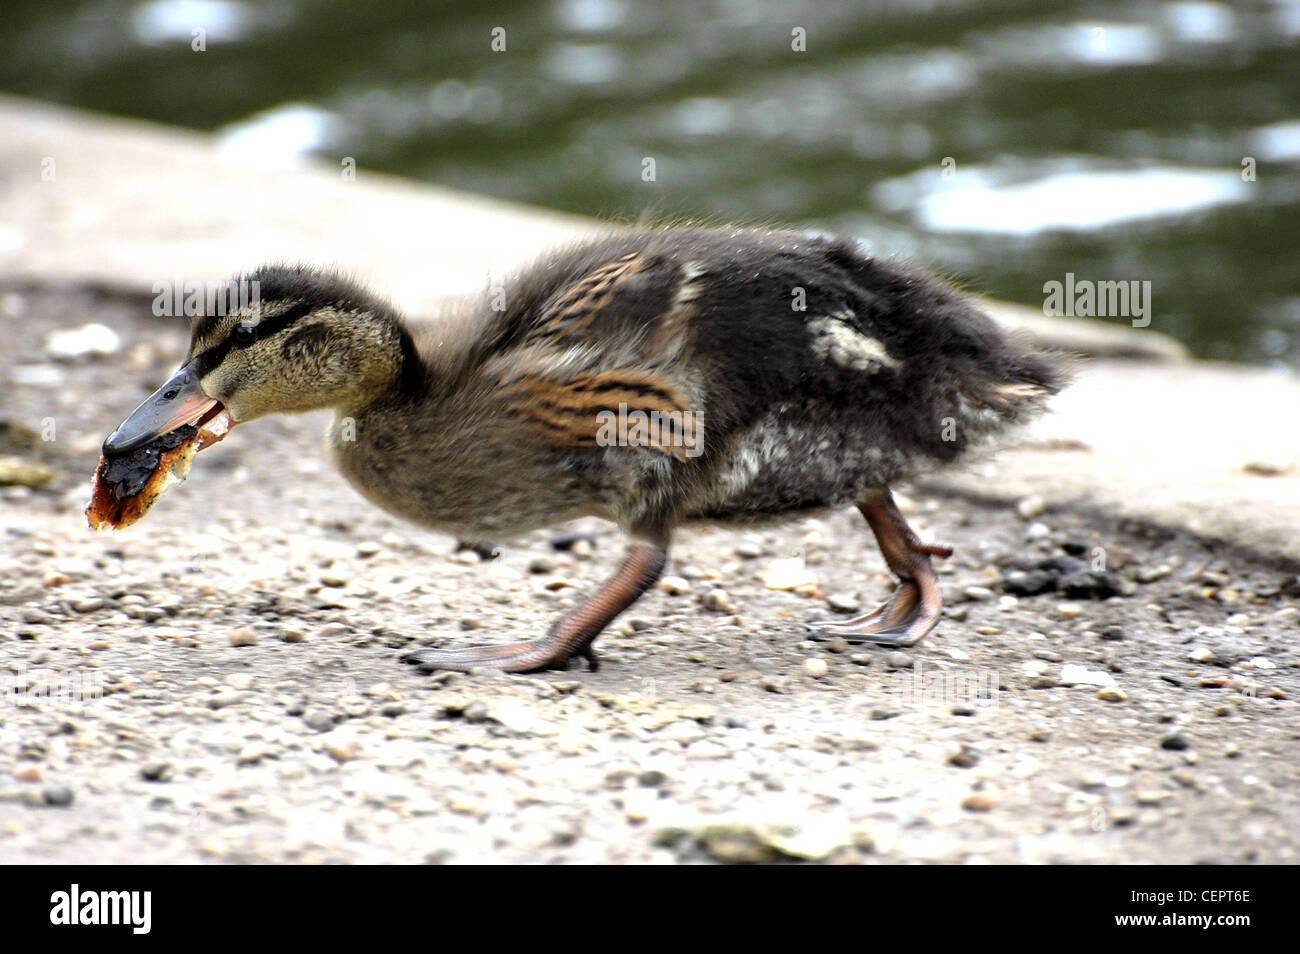 Young Mallard scooping up fragment of crusty white bread - Stock Image